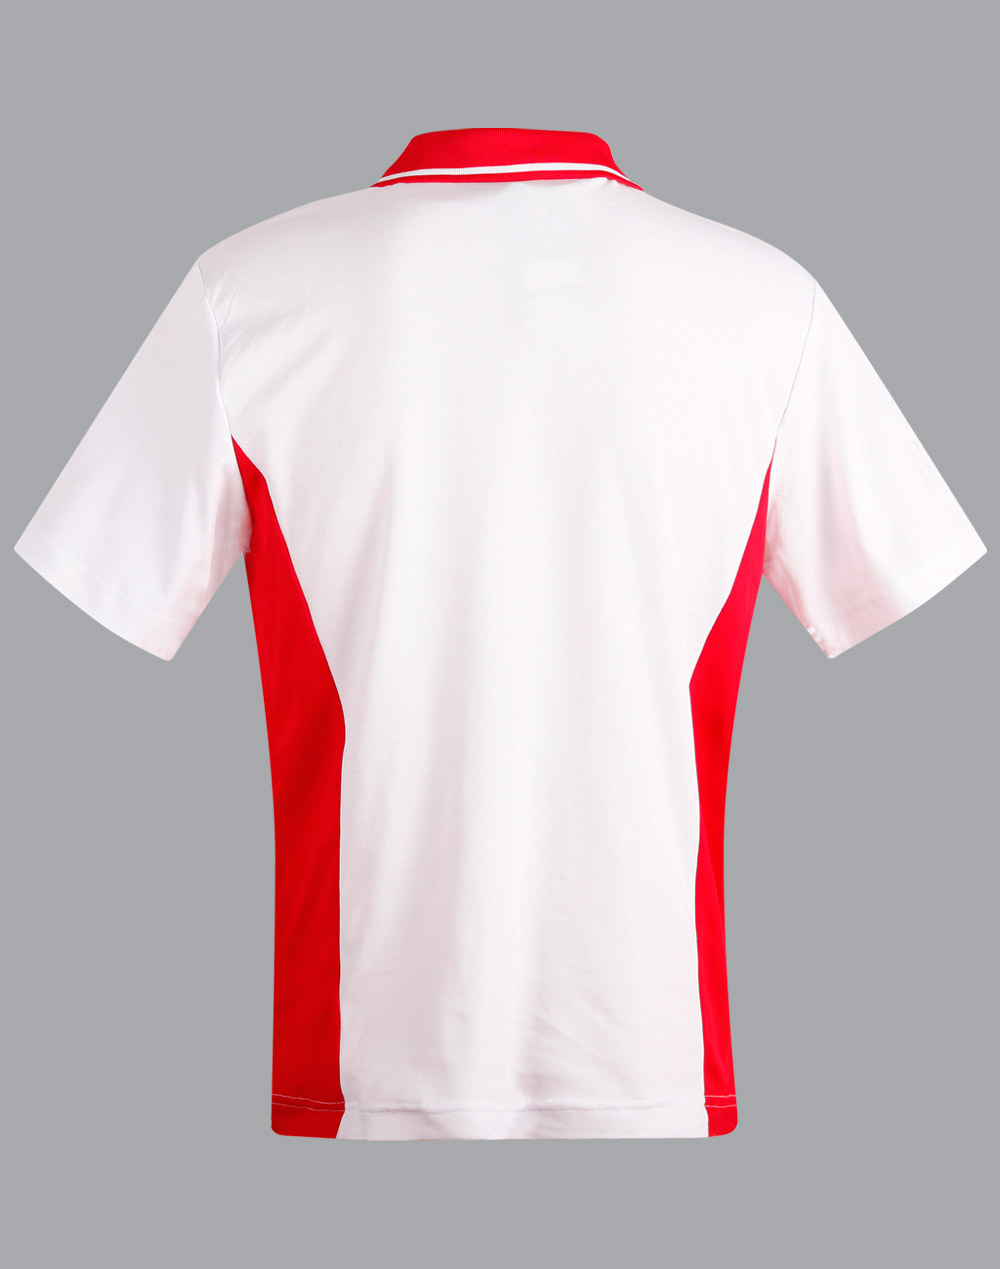 https://s3-ap-southeast-1.amazonaws.com/ws-imgs/POLOSHIRTS/PS73_WhiteRed_Back.jpg